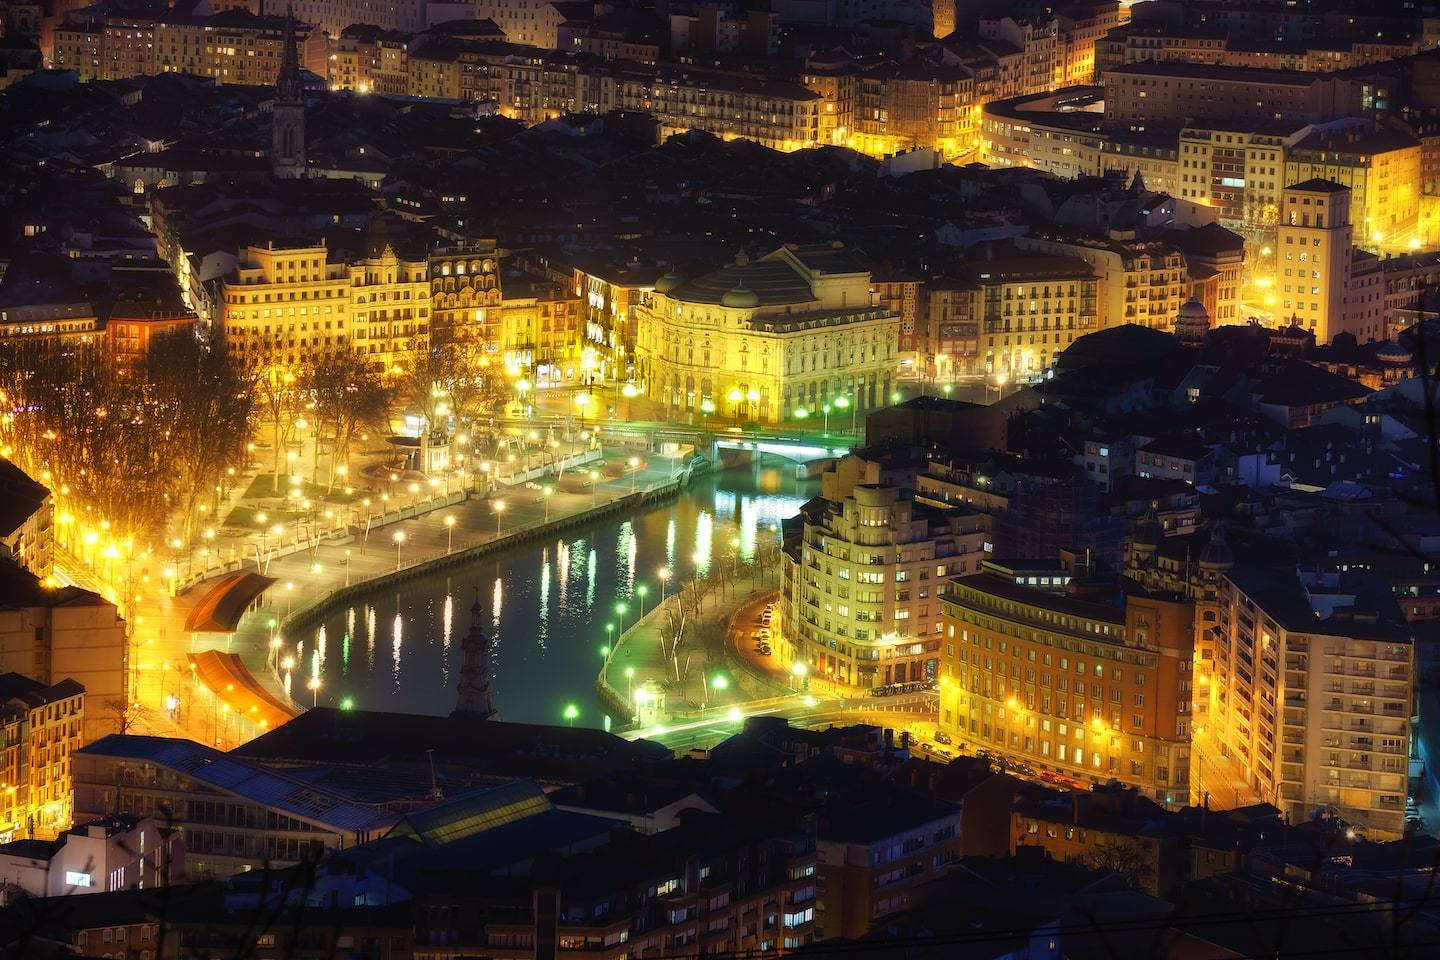 Aerial view of Bilbao at night with buildings lit up around the river